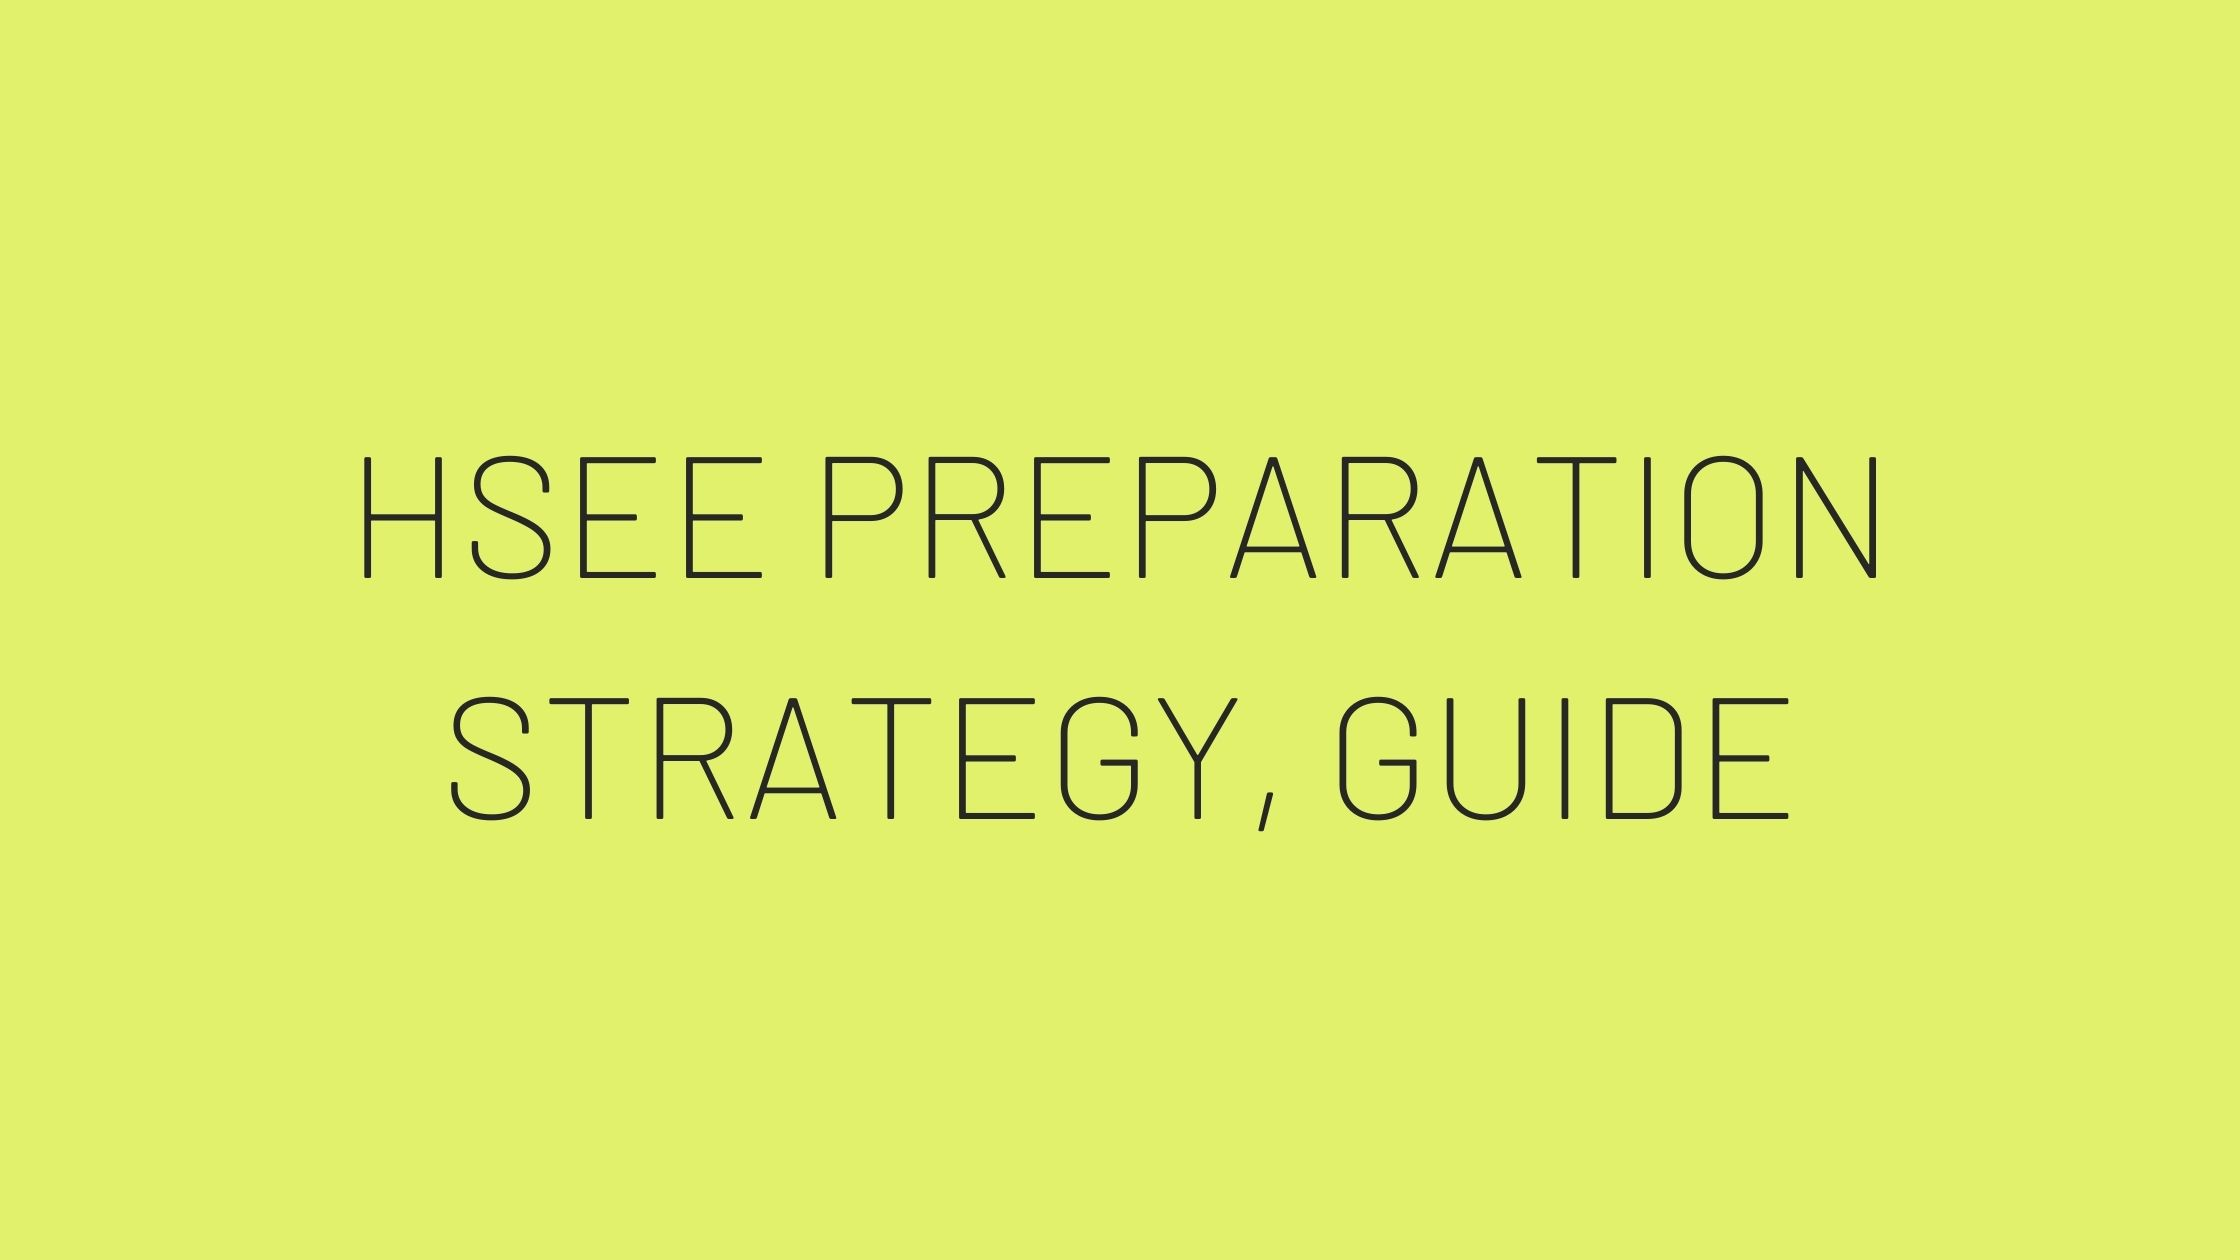 hsee 2021, hsee preparation guides and strategy, tips